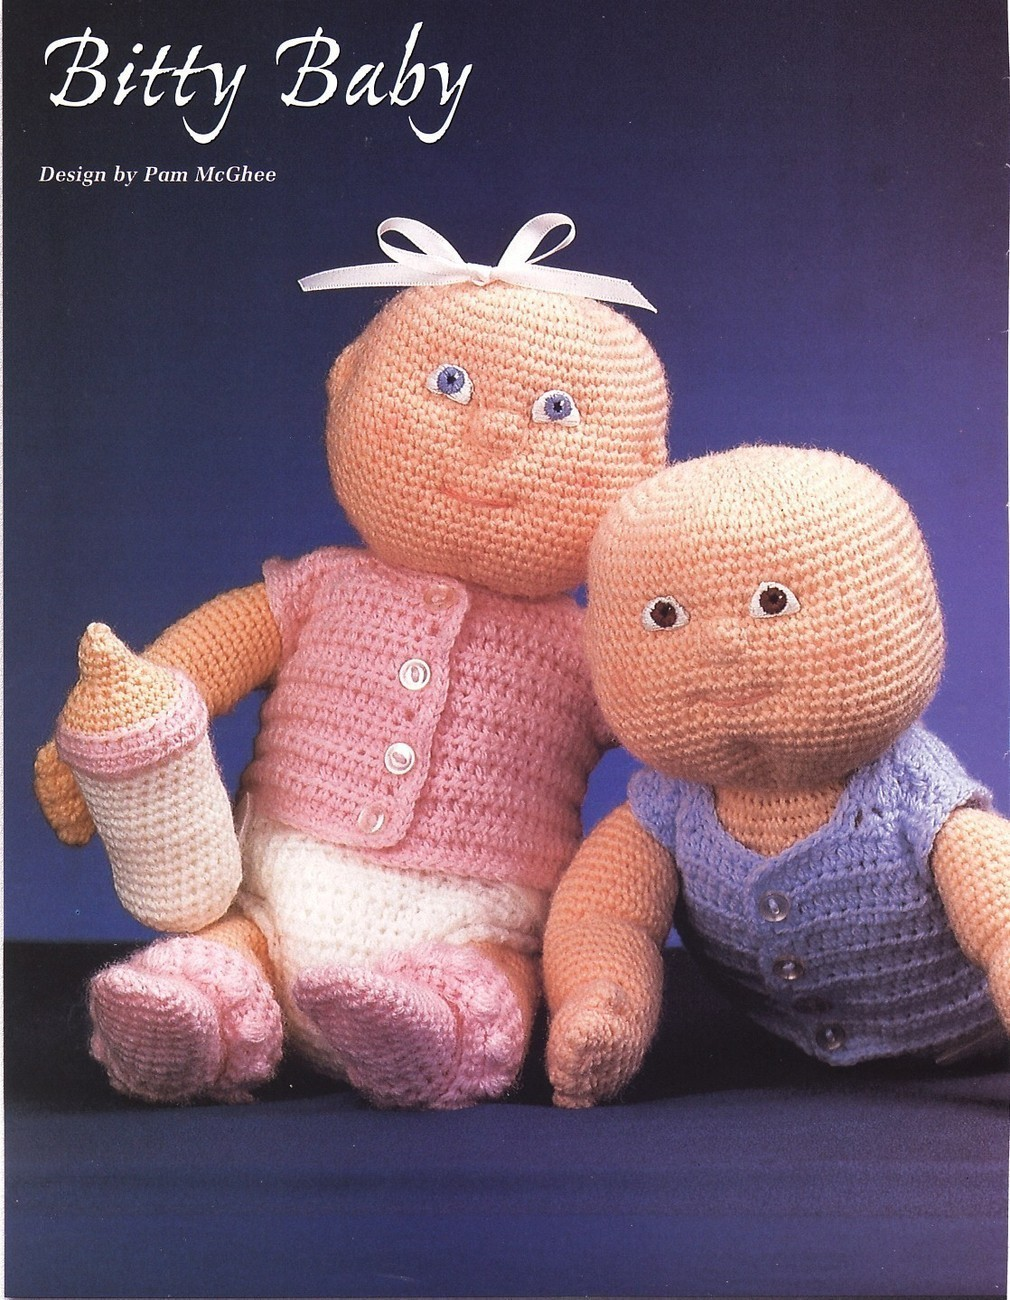 Bitty Baby Doll Crochet Patterns Soft Sculpture 12 In Tall ...